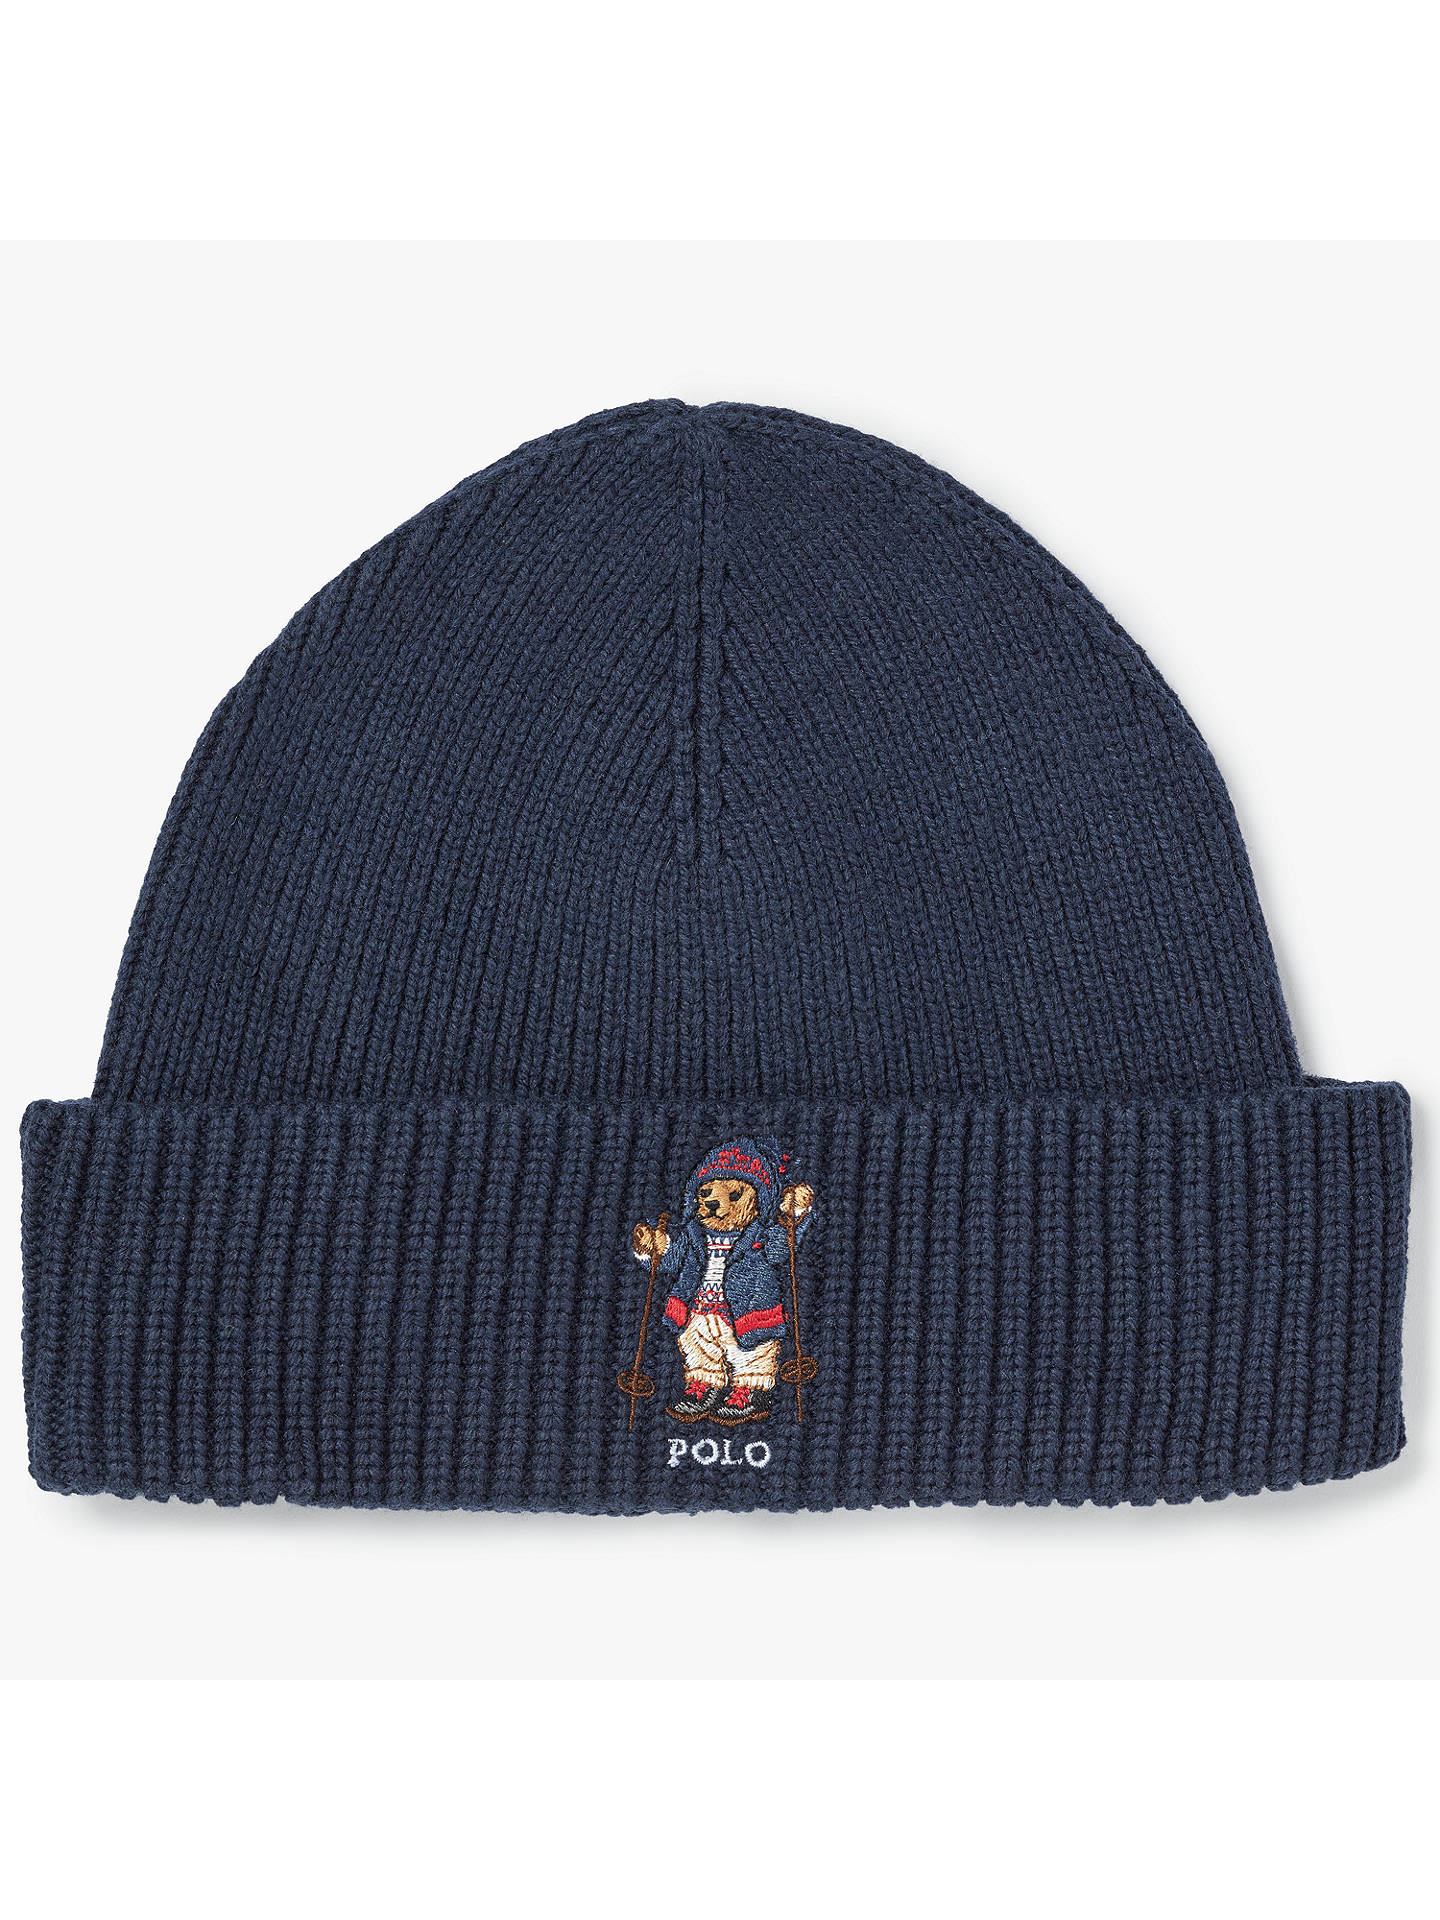 NEW Polo Ralph Lauren Men/'s Hat Beanie One Size